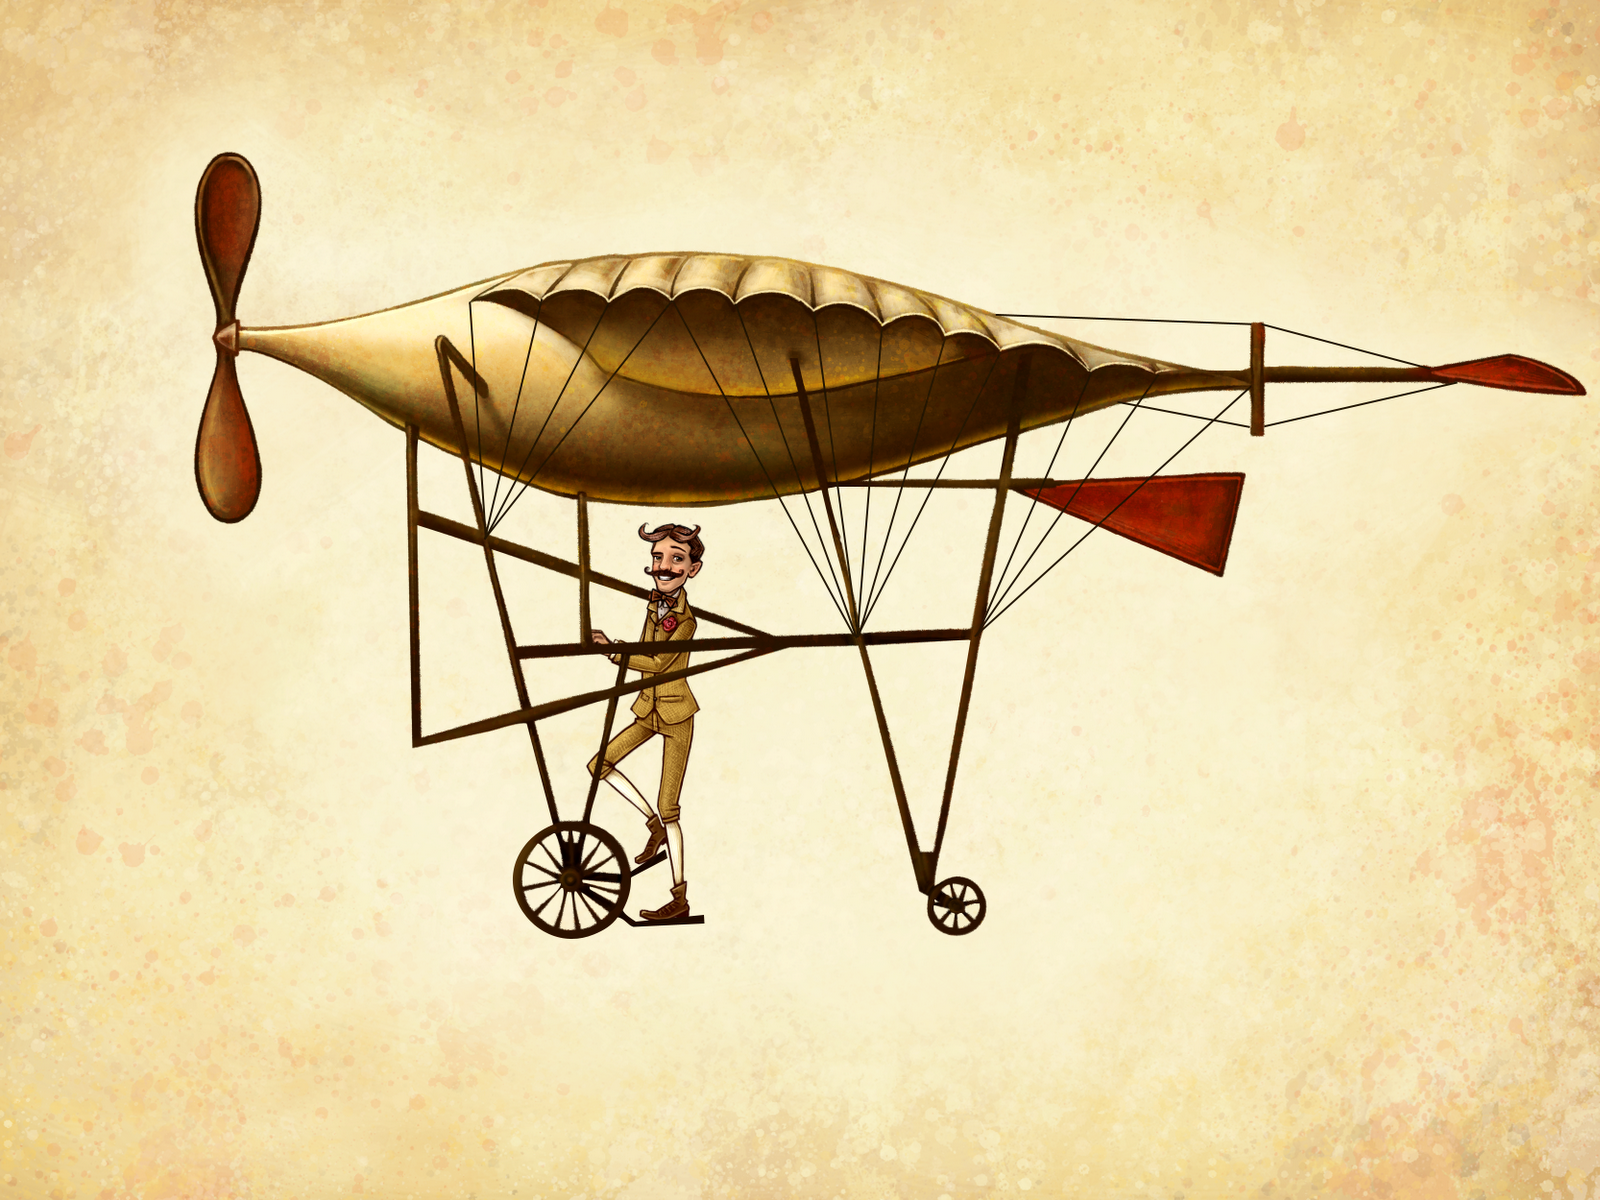 1000+ images about flying machines on Pinterest.